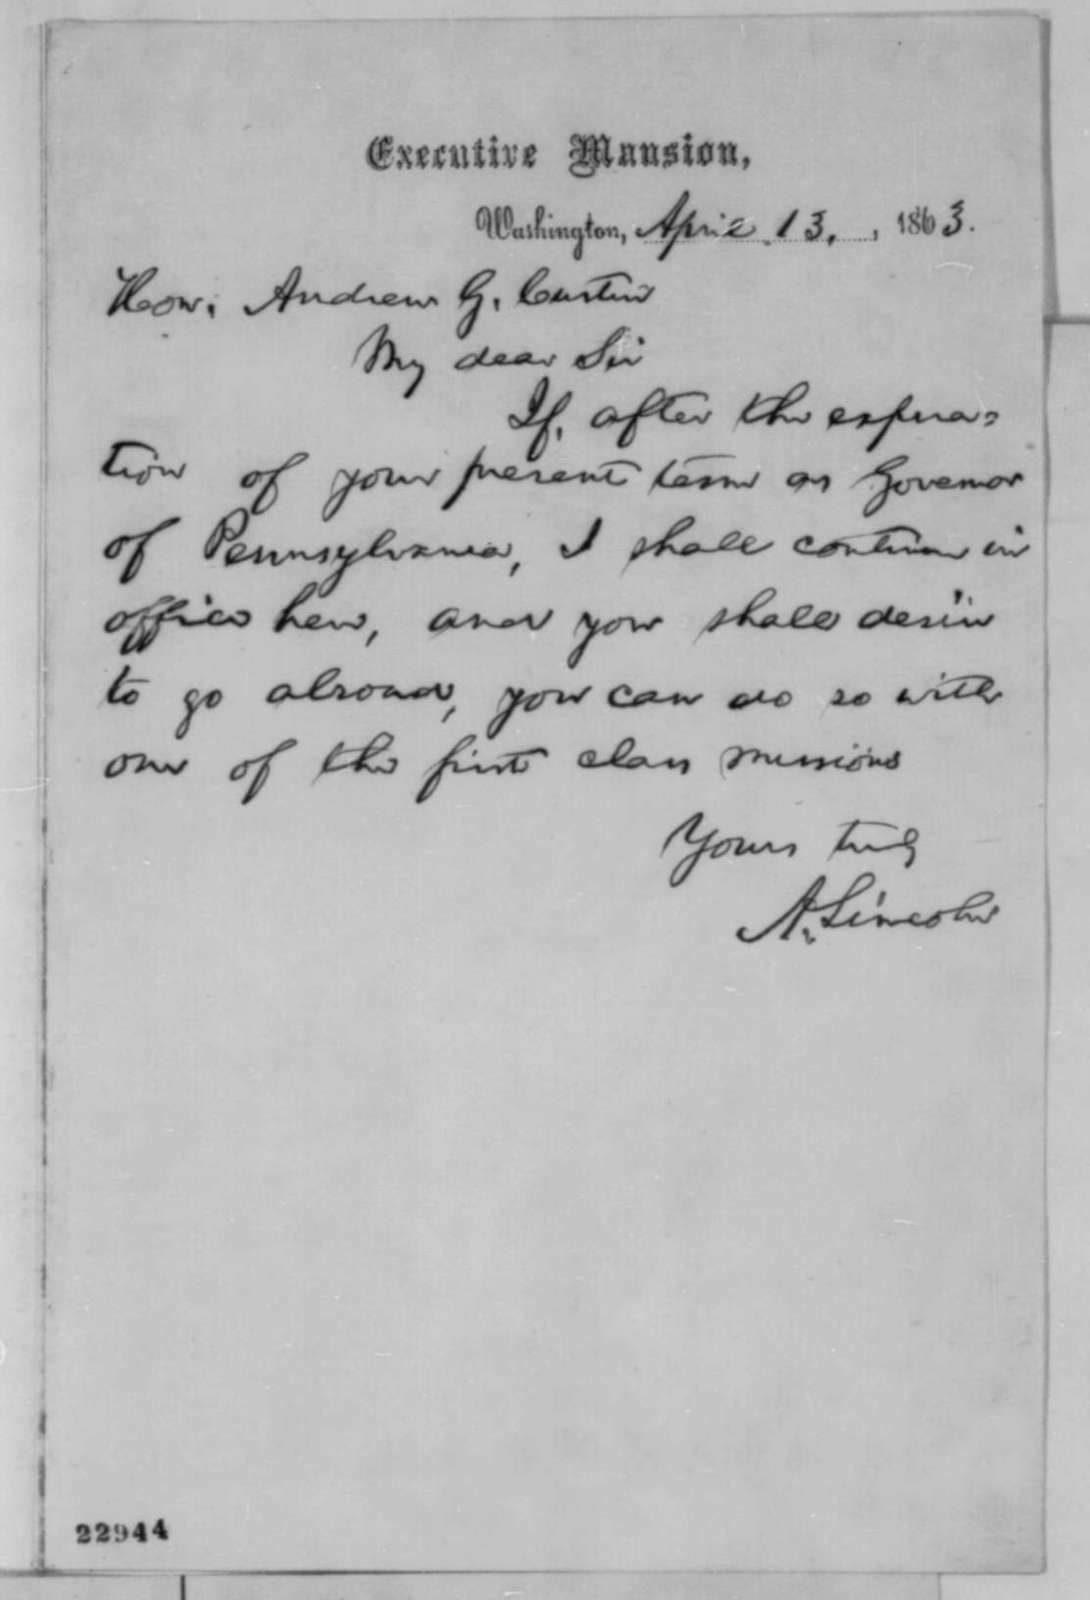 Abraham Lincoln to Andrew G. Curtin, Monday, April 13, 1863  (Offers a diplomatic appointment)